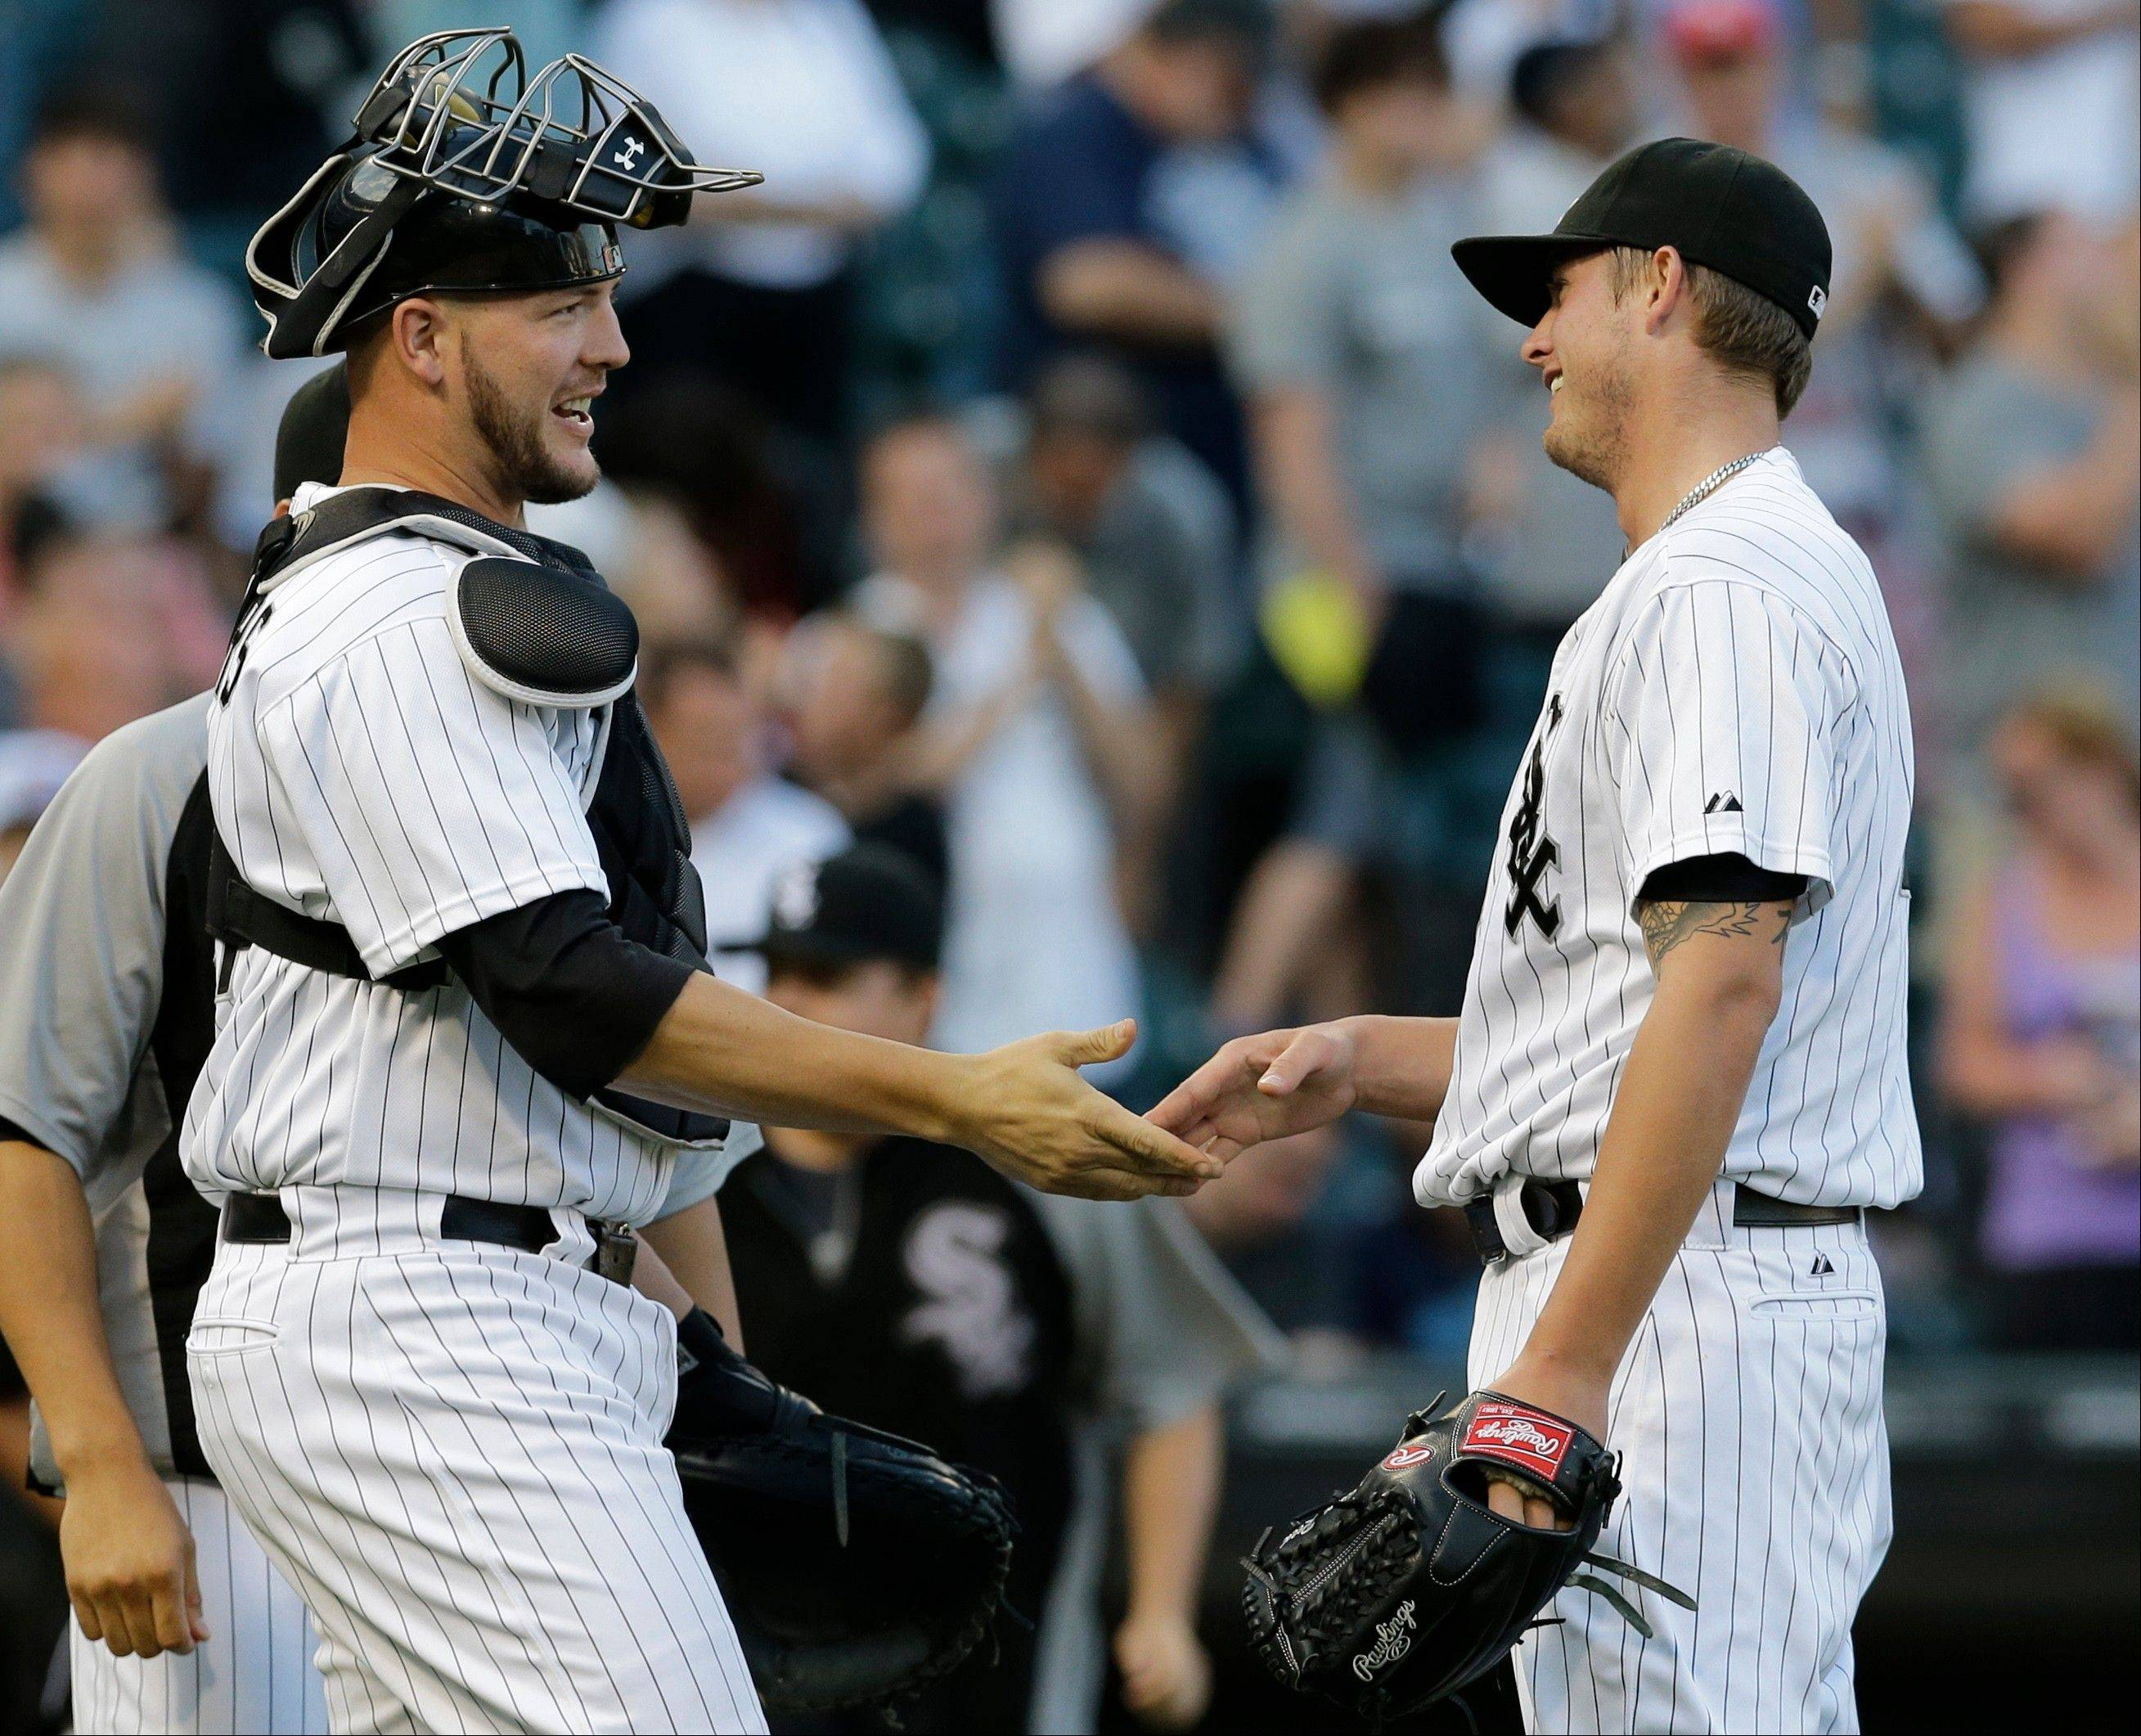 White Sox closer Addison Reed, right, celebrates with catcher Tyler Flowers after defeating the Minnesota Twins 5-4 Saturday at U.S. Cellular Field.